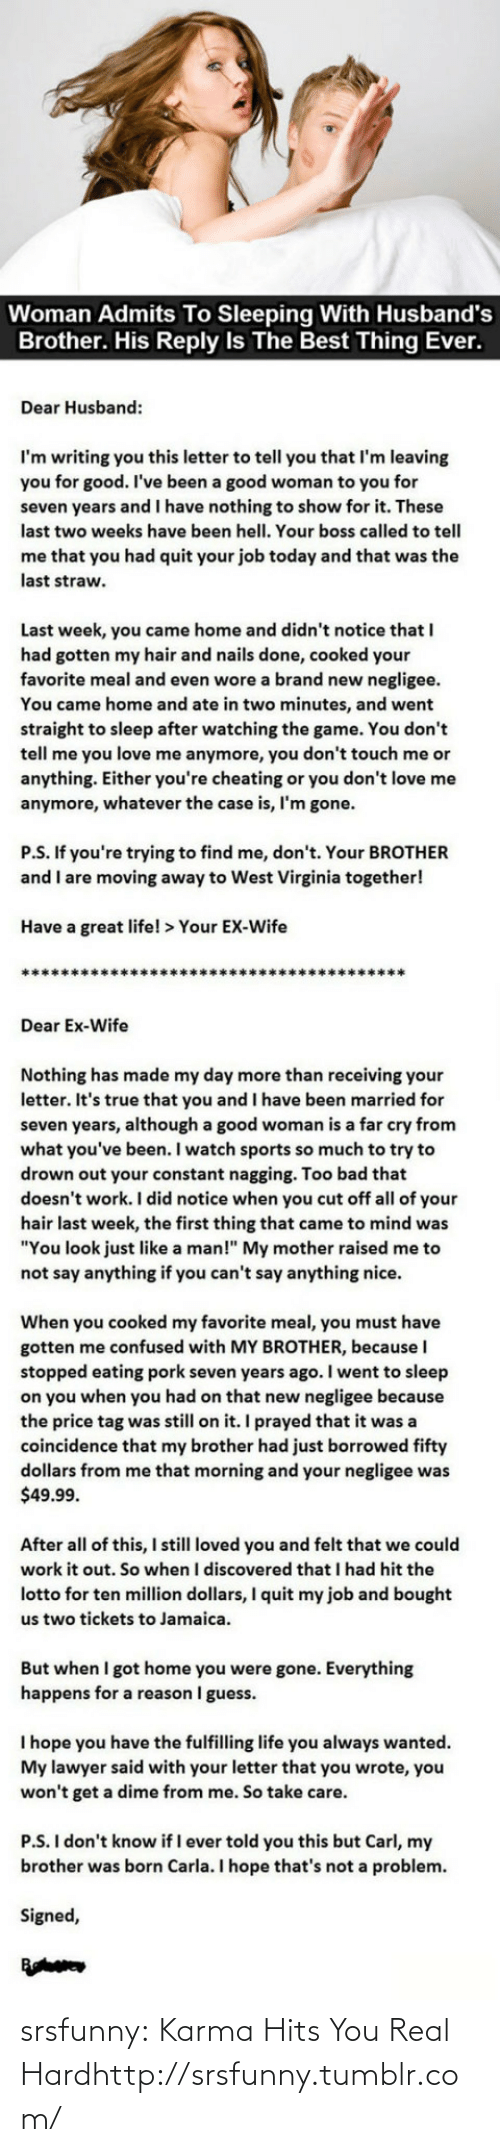 """Borrowed: Woman Admits To Sleeping With Husband's  Brother. His Reply Is The Best Thing Ever.  Dear Husband:  I'm writing you this letter to tell you that I'm leaving  you for good. I've been a good woman to you for  seven years and I have nothing to show for it. These  last two weeks have been hell. Your boss called to tell  me that you had quit your job today and that was the  last straw.  Last week, you came home and didn't notice that I  had gotten my hair and nails done, cooked your  favorite meal and even wore a brand new negligee.  You came home and ate in two minutes, and went  straight to sleep after watching the game. You don't  tell me you love me anymore, you don't touch me or  anything. Either you're cheating or you don't love me  anymore, whatever the case is, I'm gone.  P.S. If you're trying to find me, don't. Your BROTHER  and I are moving away to West Virginia together!  Have a great life! > Your EX-Wife  ***********  **************  Dear Ex-Wife  Nothing has made my day more than receiving your  letter. It's true that you and I have been married for  seven years, although a good woman is a far cry from  what you've been. I watch sports so much to try to  drown out your constant nagging. Too bad that  doesn't work. I did notice when you cut off all of your  hair last week, the first thing that came to mind was  """"You look just like a man!"""" My mother raised me to  not say anything if you can't say anything nice.  When you cooked my favorite meal, you must have  gotten me confused with MY BROTHER, because I  stopped eating pork seven years ago. I went to sleep  on you when you had on that new negligee because  the price tag was still on it. I prayed that it was a  coincidence that my brother had just borrowed fifty  dollars from me that morning and your negligee was  $49.99.  After all of this, I still loved you and felt that we could  work it out. So when I discovered that I had hit the  lotto for ten million dollars, I quit my job and bought  us two """